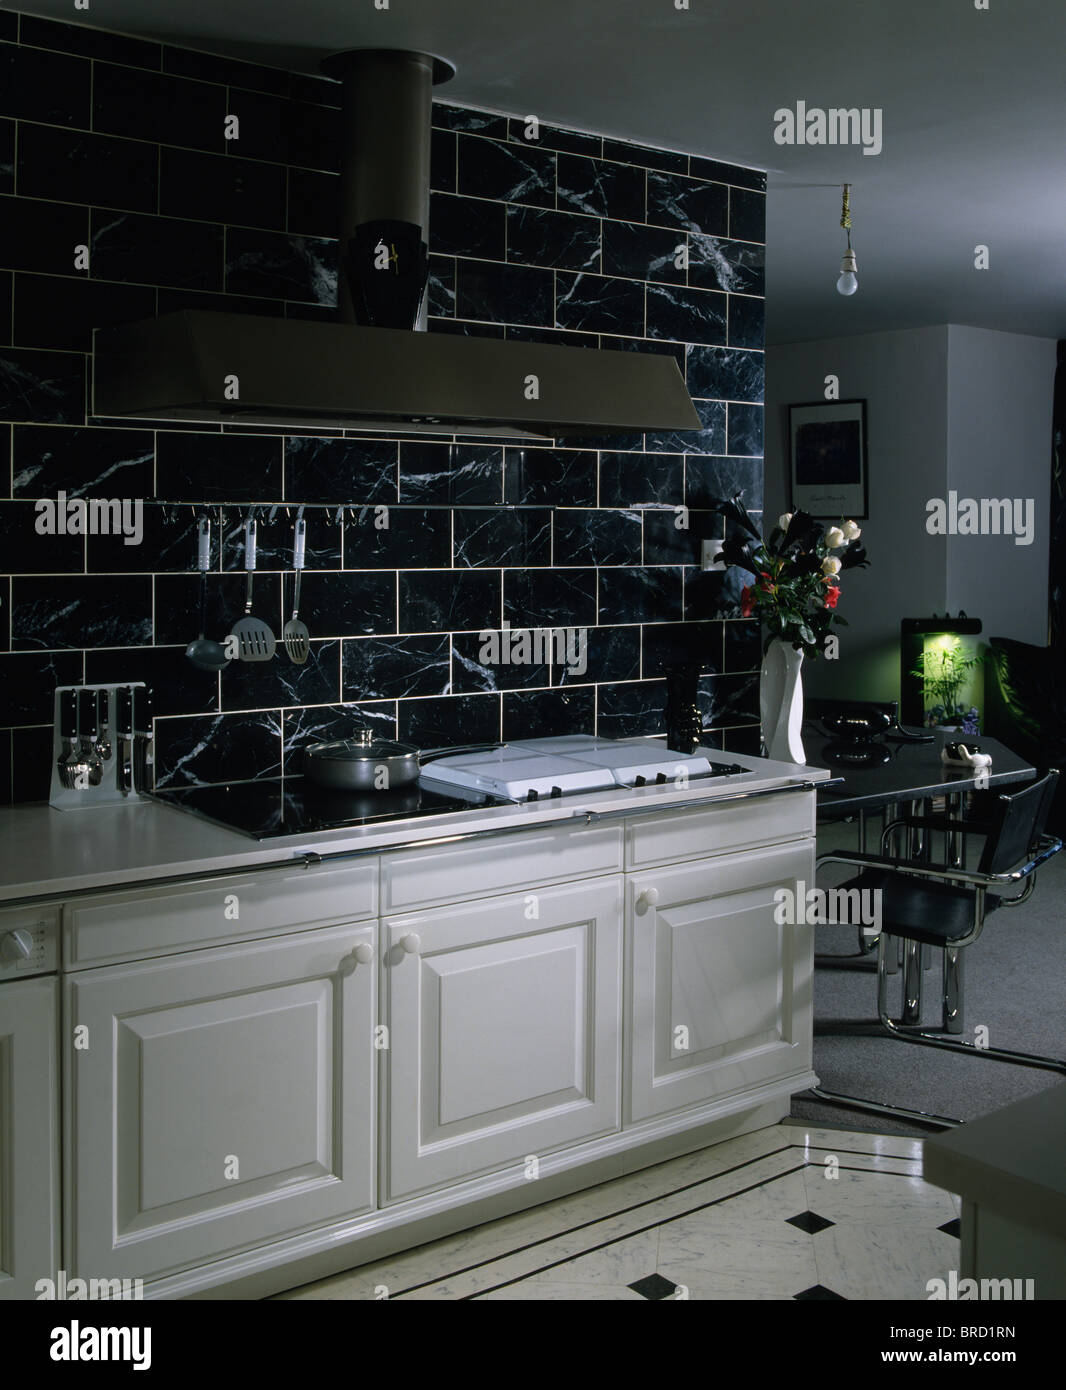 Black And White Kitchen Wall Tiles Black Wall Tiles Above White Fitted Units In Modern White